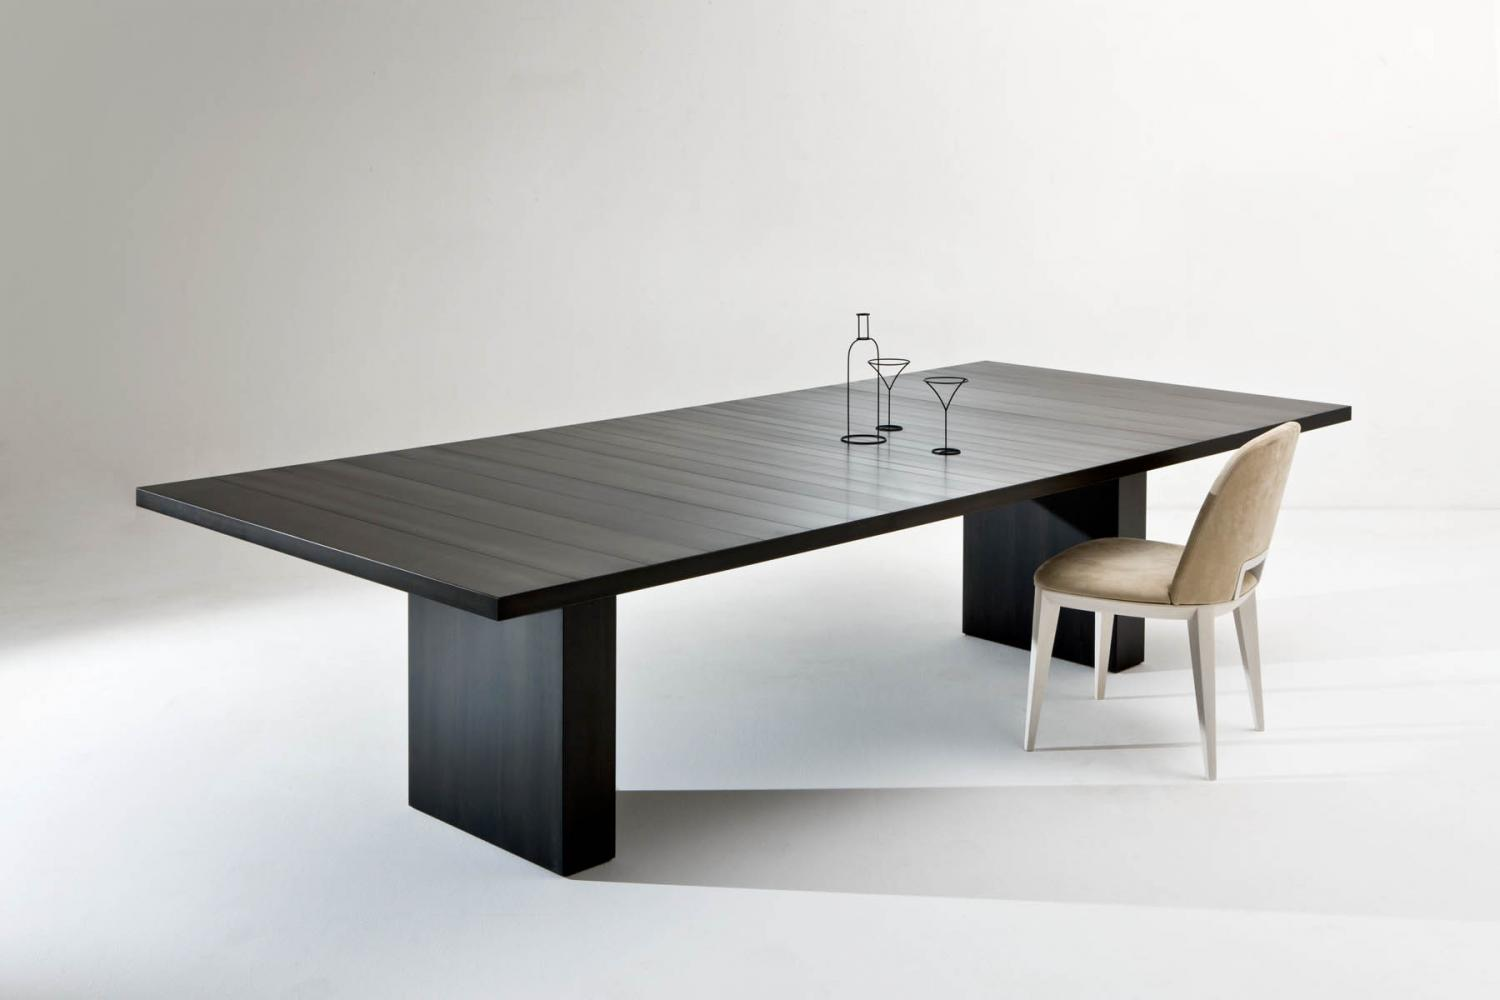 Luxury custom made table cladded in black iron